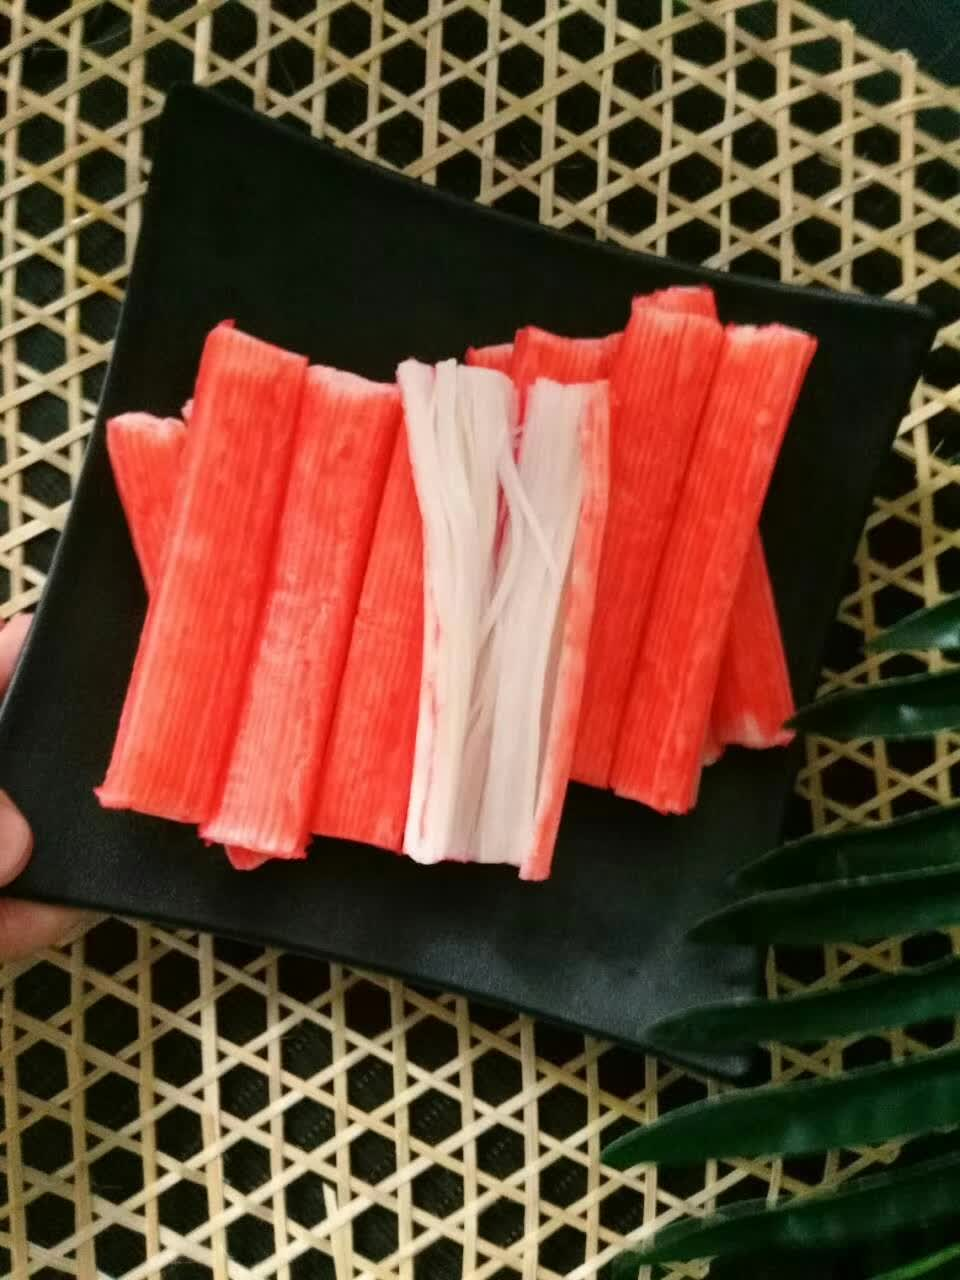 Surimi Crab Stick/Imitation Crab Stick/Crabstick